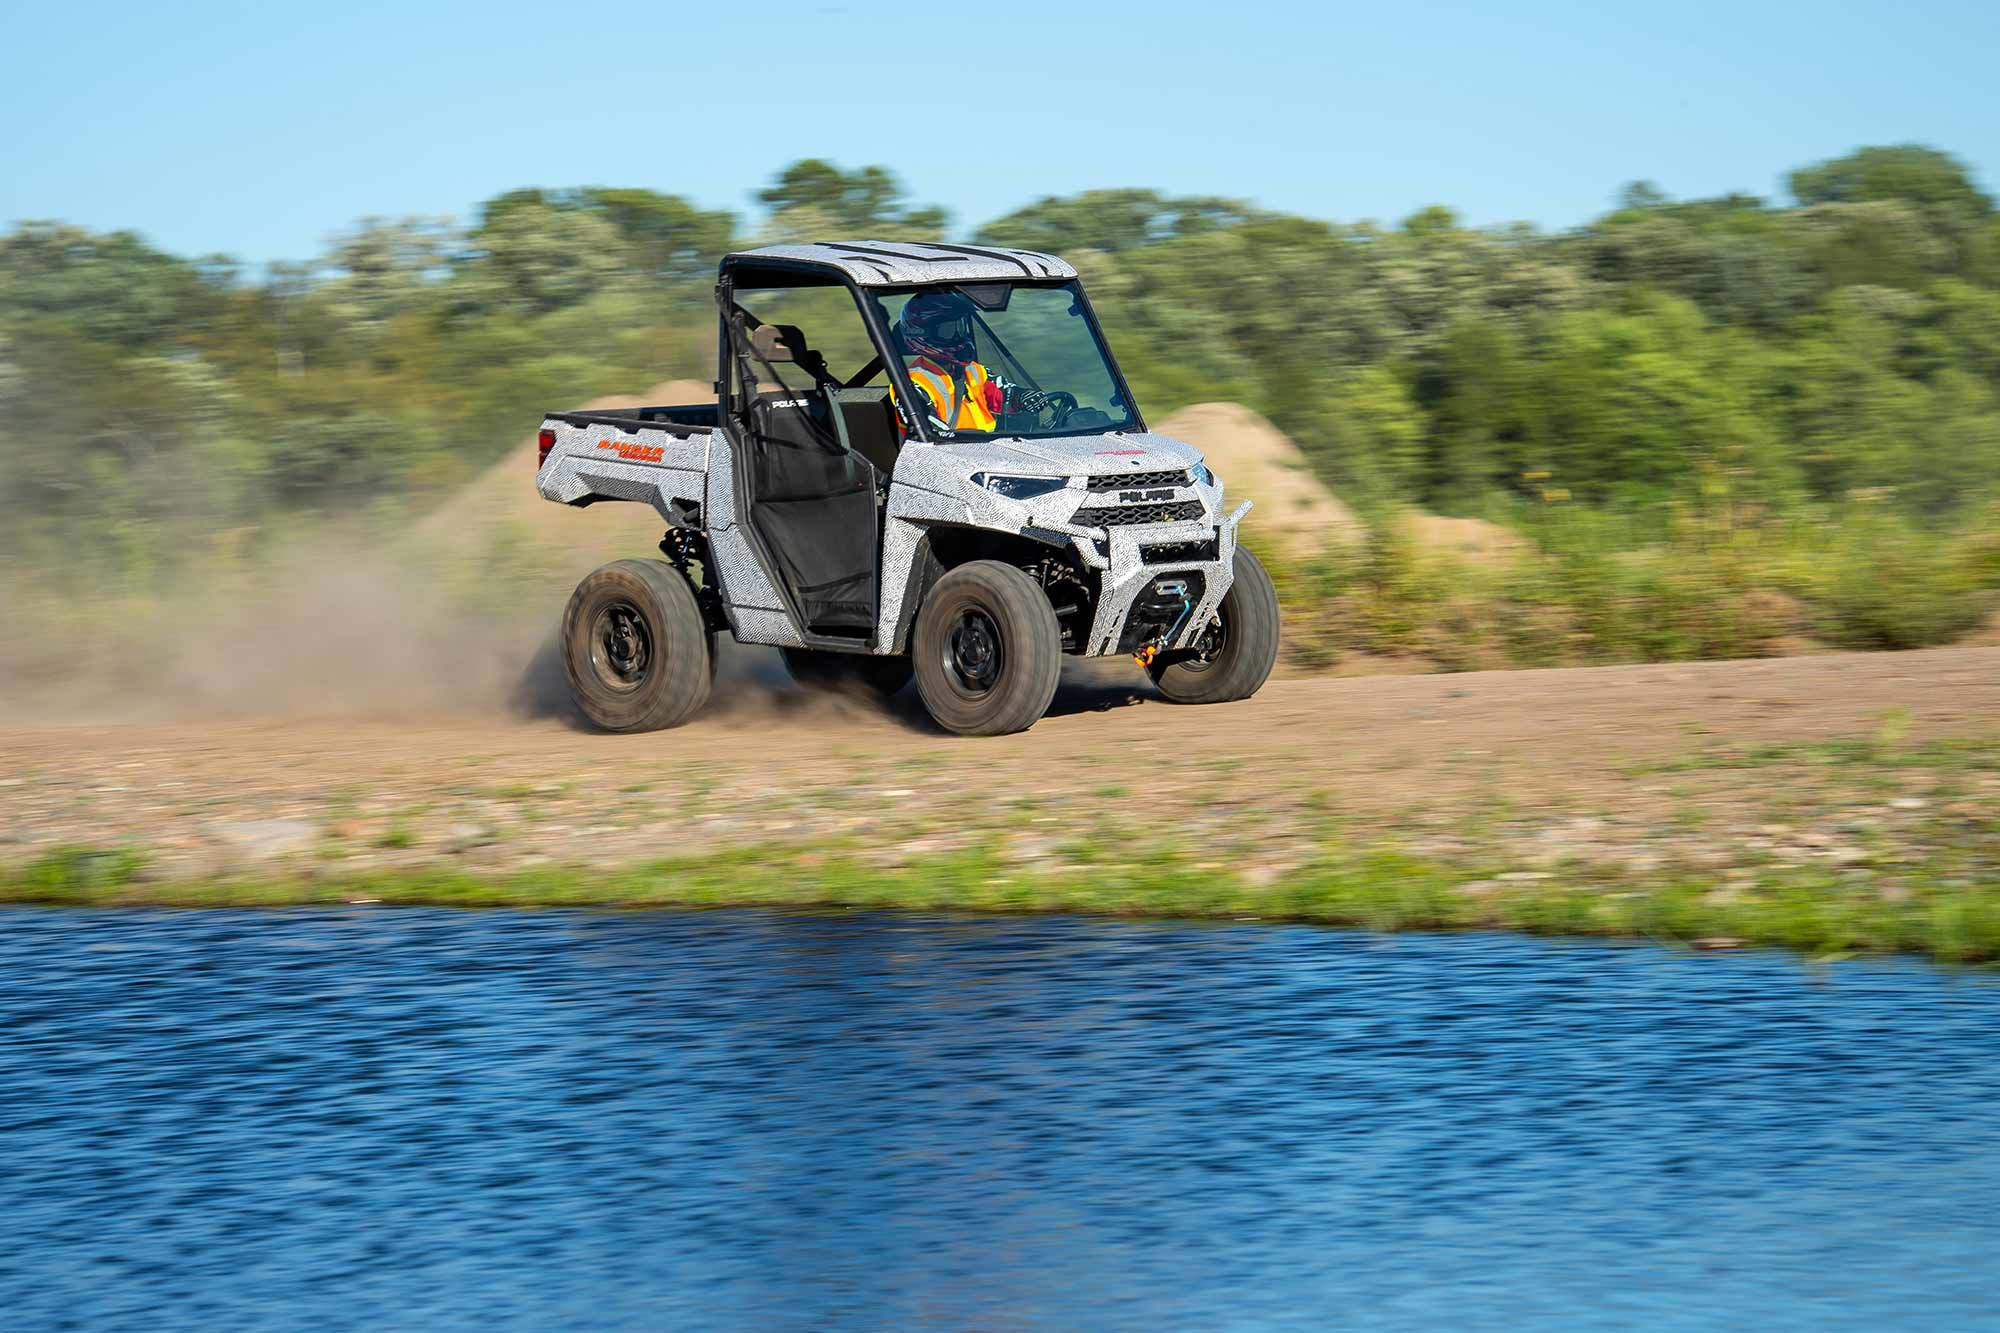 Polaris knows the Ranger EV's success depends on how well the company can demonstrate the vehicle's capabilities.